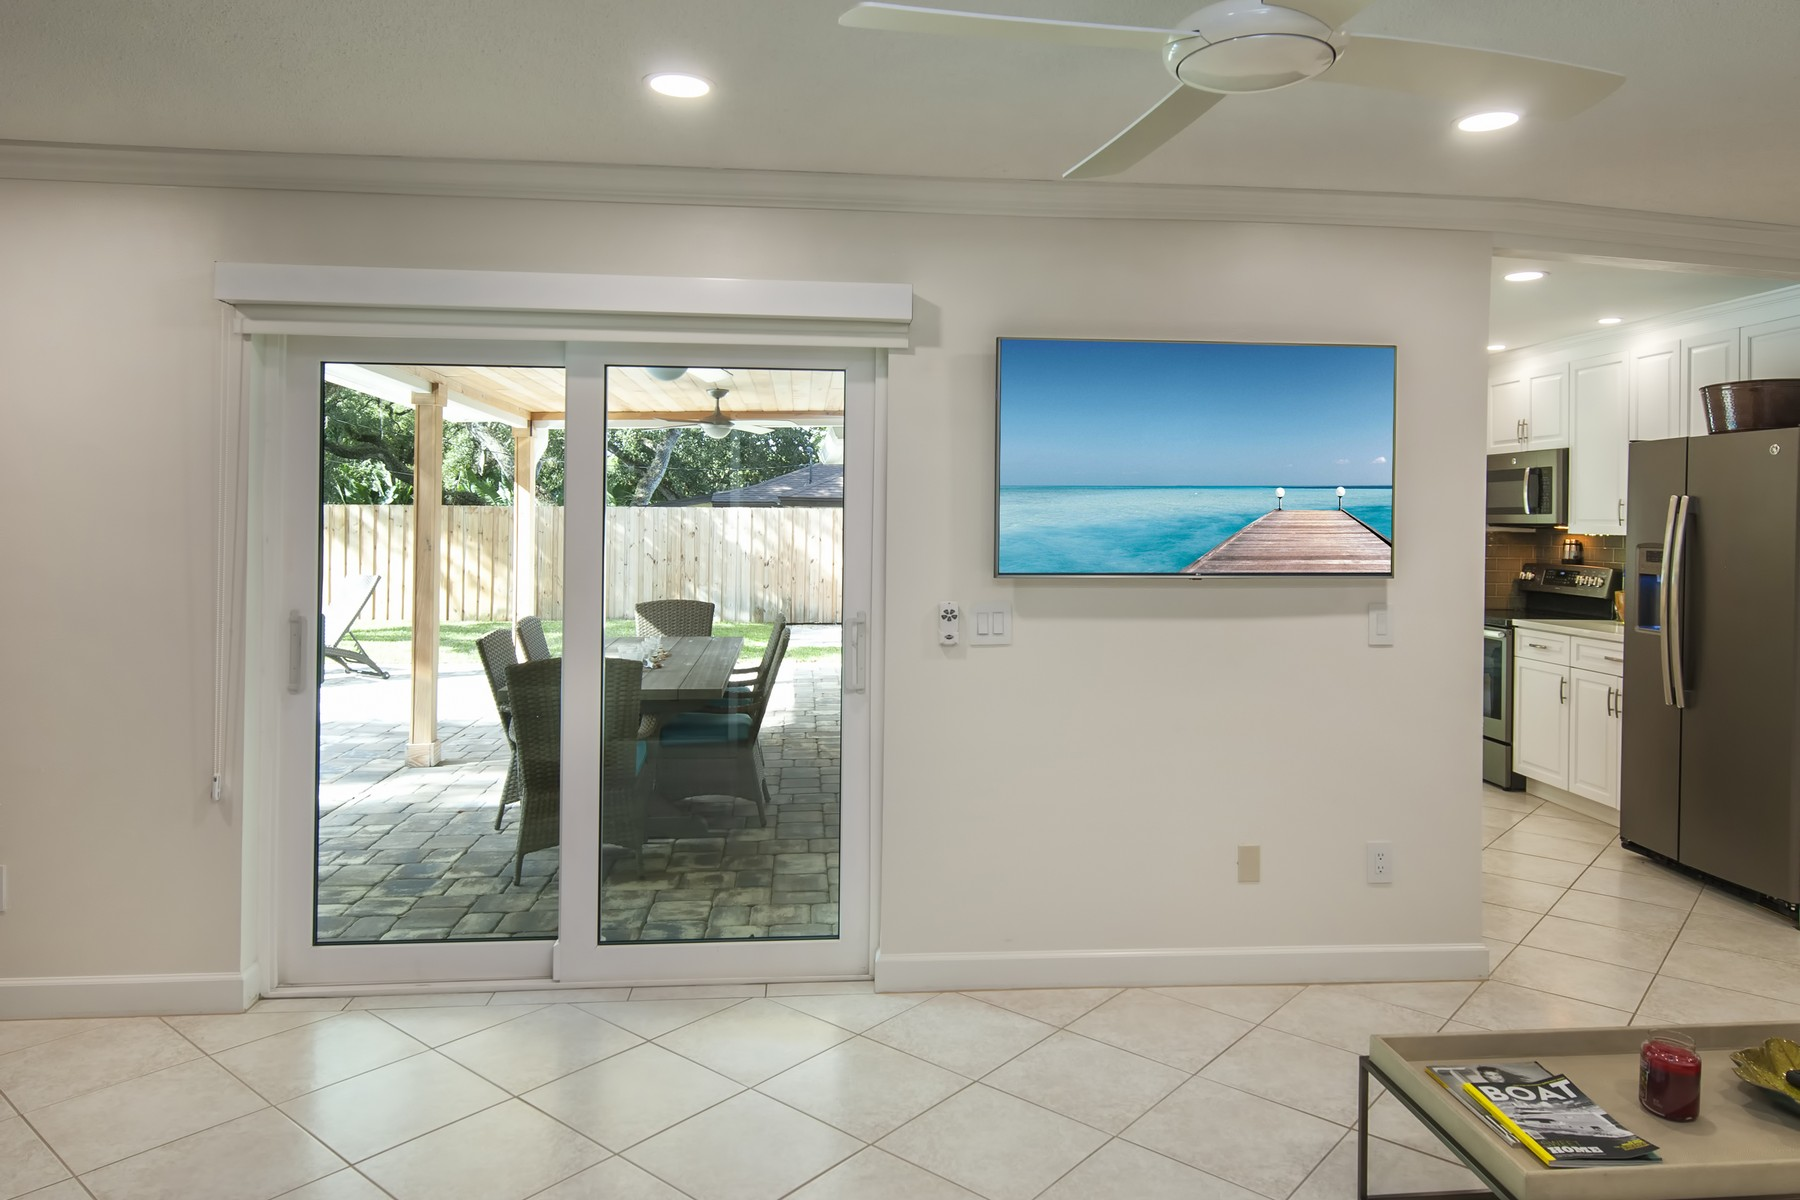 Additional photo for property listing at Impeccably Redone Pool Home East of A1A 1491 Smugglers Cove Vero Beach, Florida 32962 United States